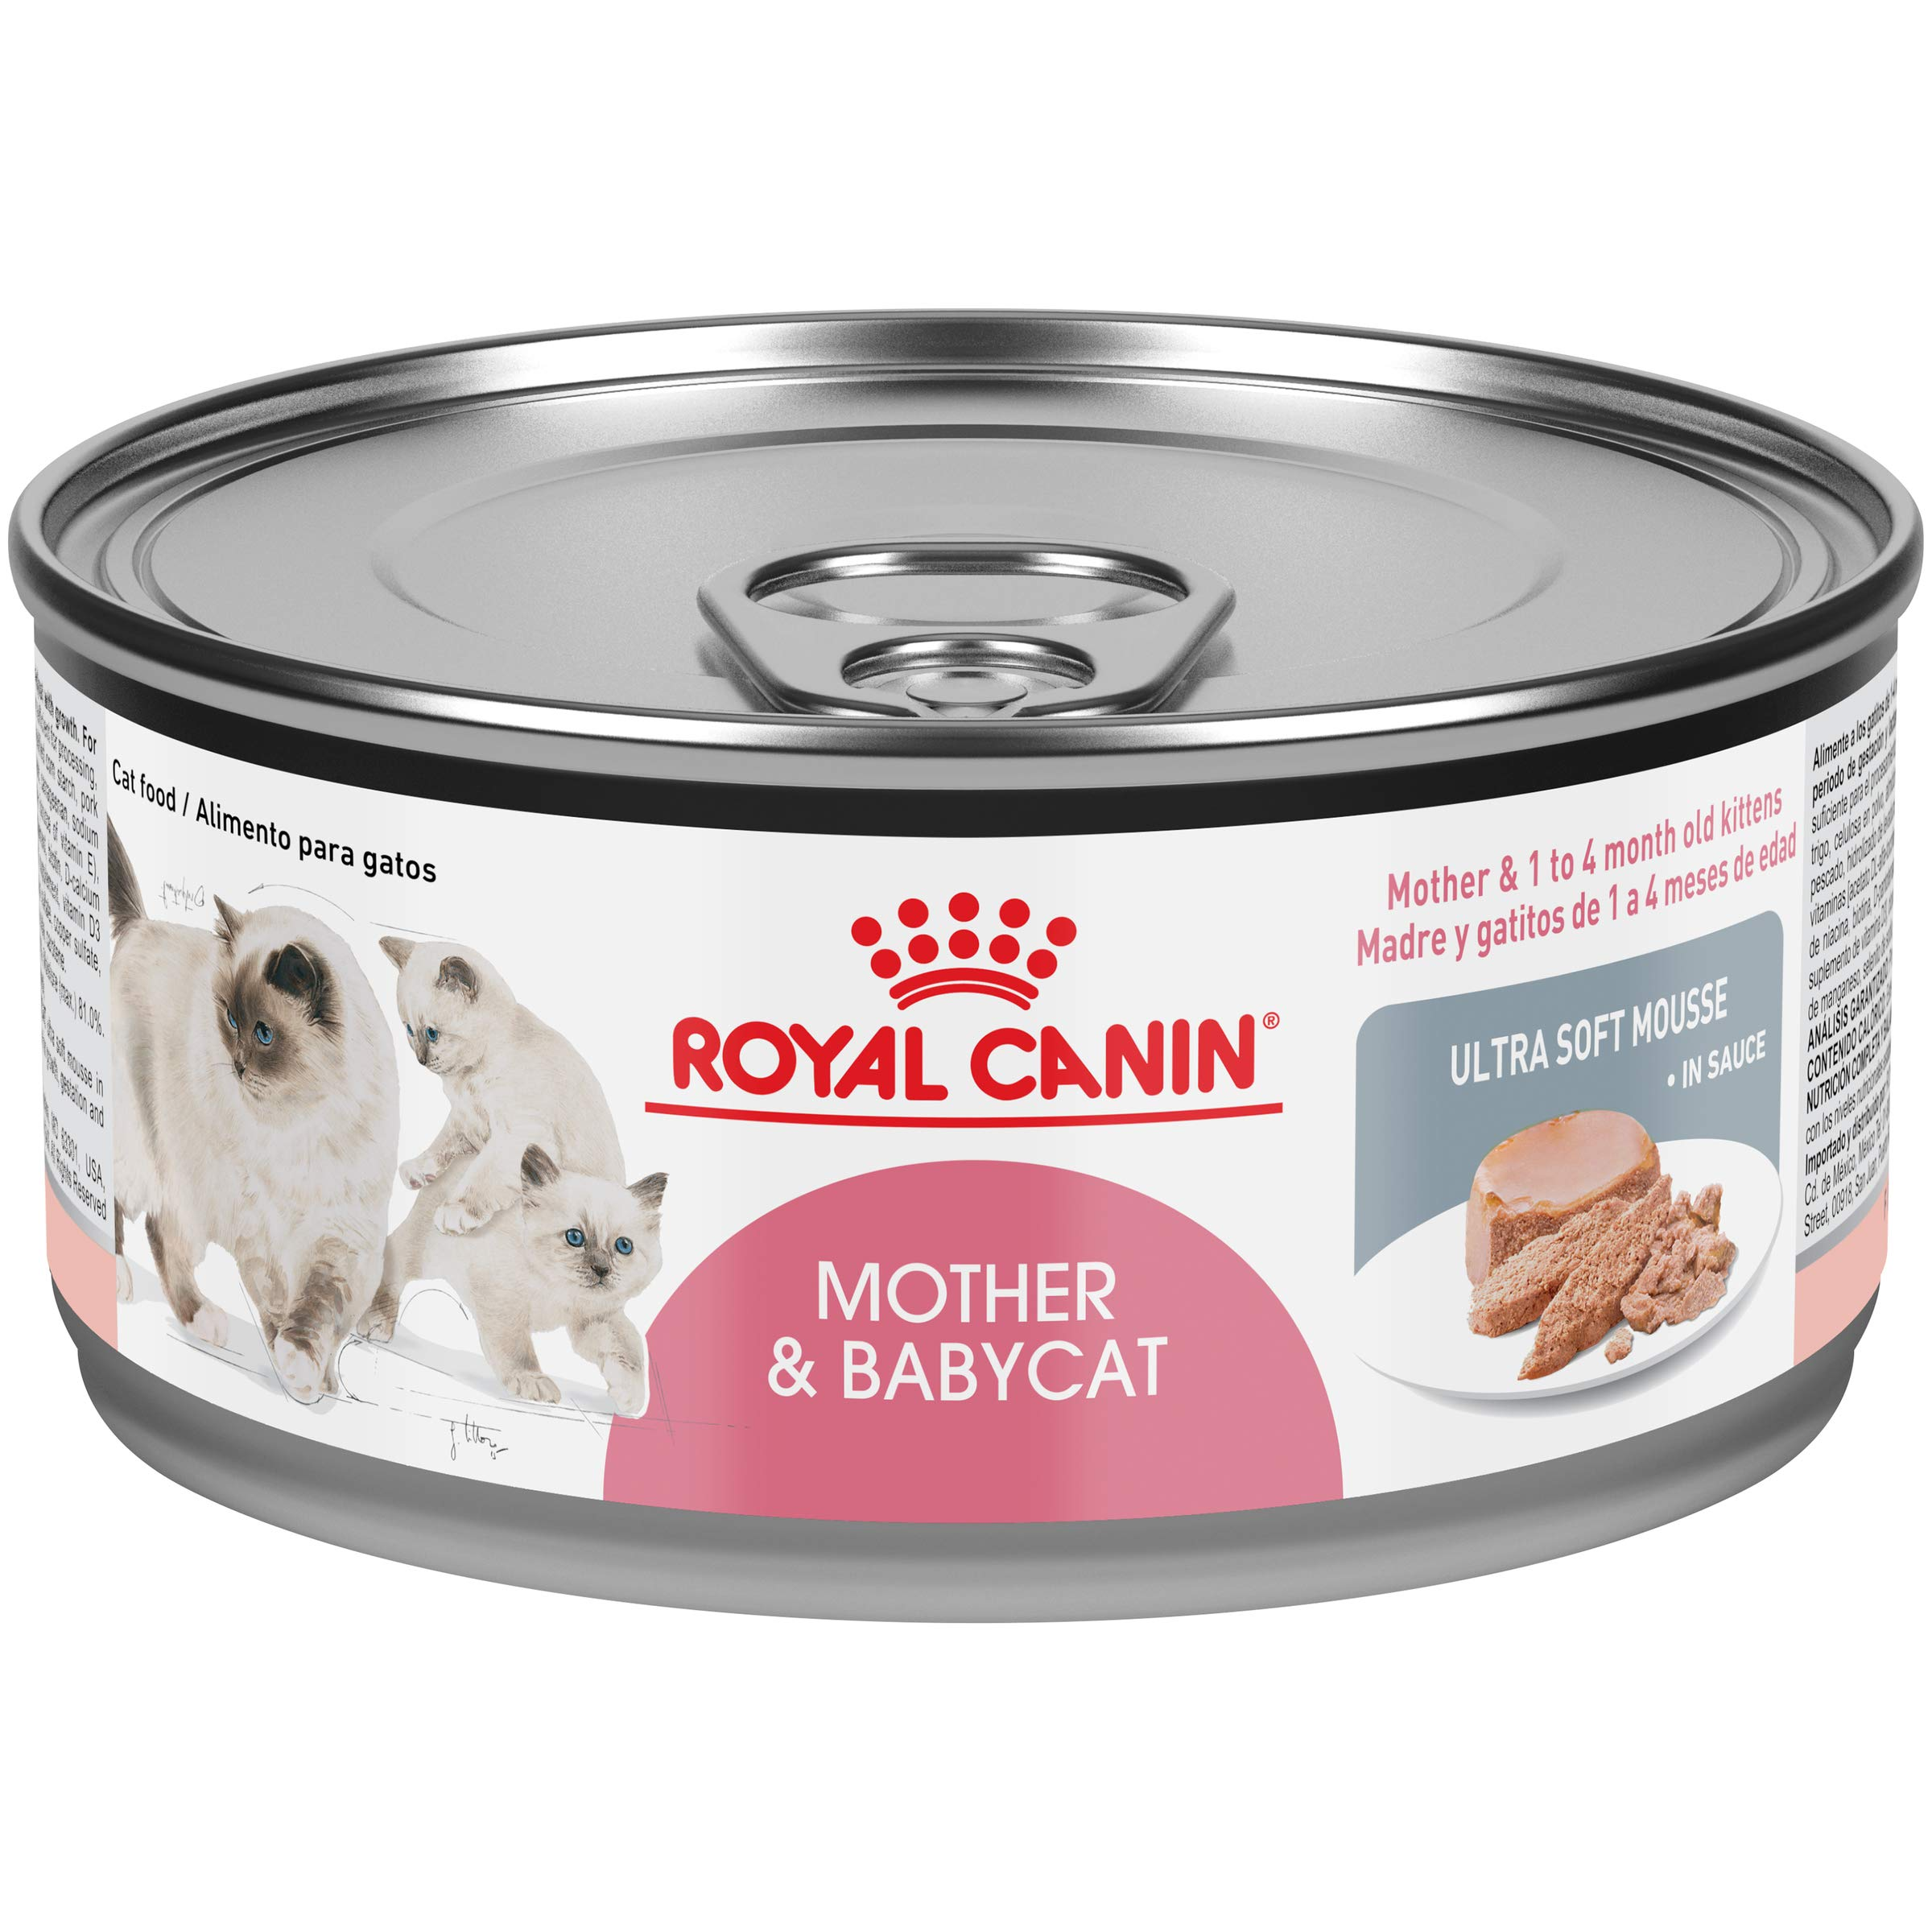 Royal Canin Mother & Babycat Ultra-Soft Mousse in Sauce Wet Cat Food for New Kittens and Nursing or Pregnant Mother Cats, 5.8 Ounce Can by Royal Canin